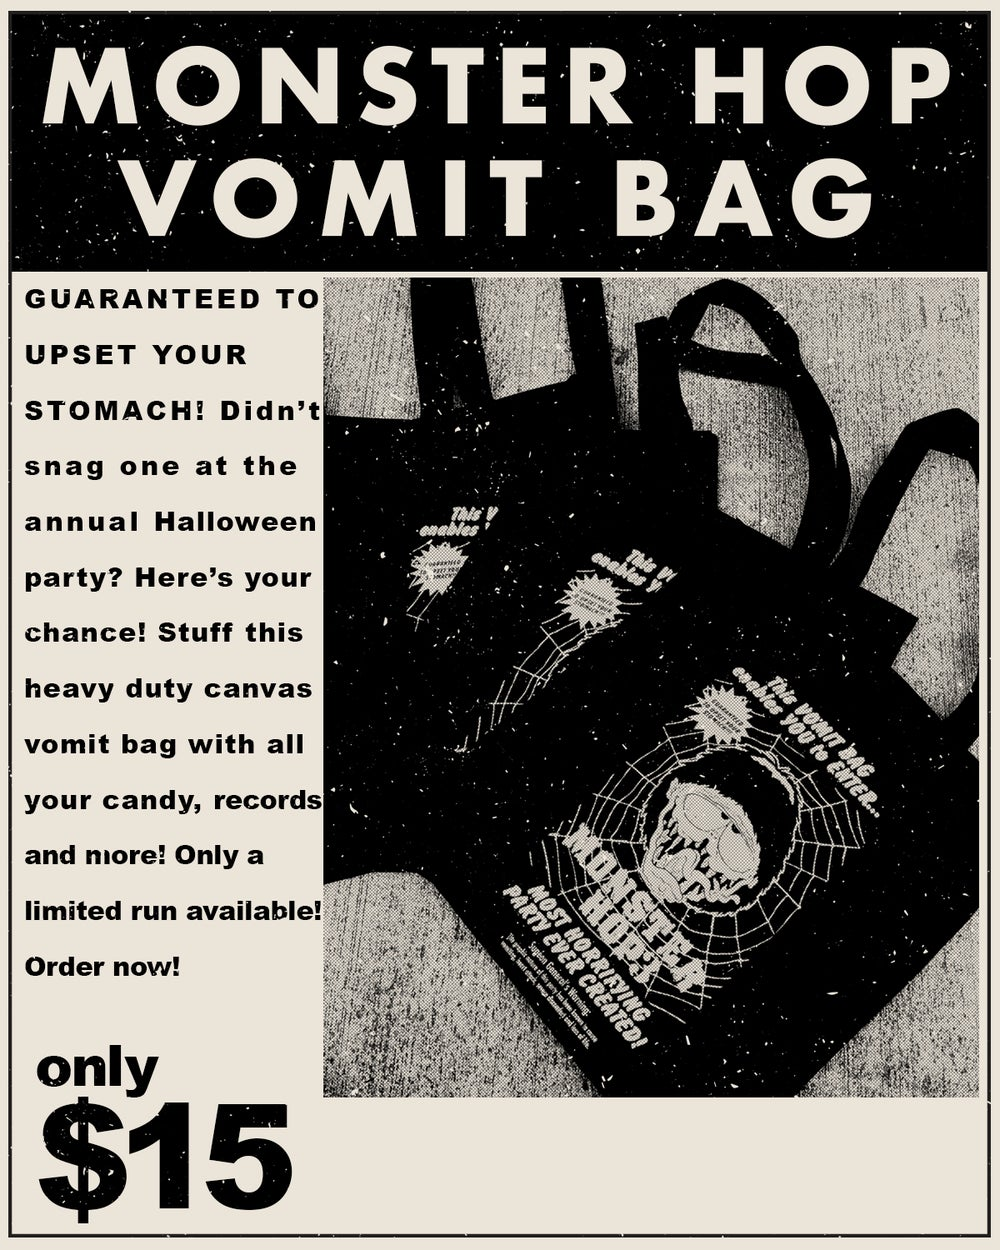 Image of Monster Hop Vomit Bag